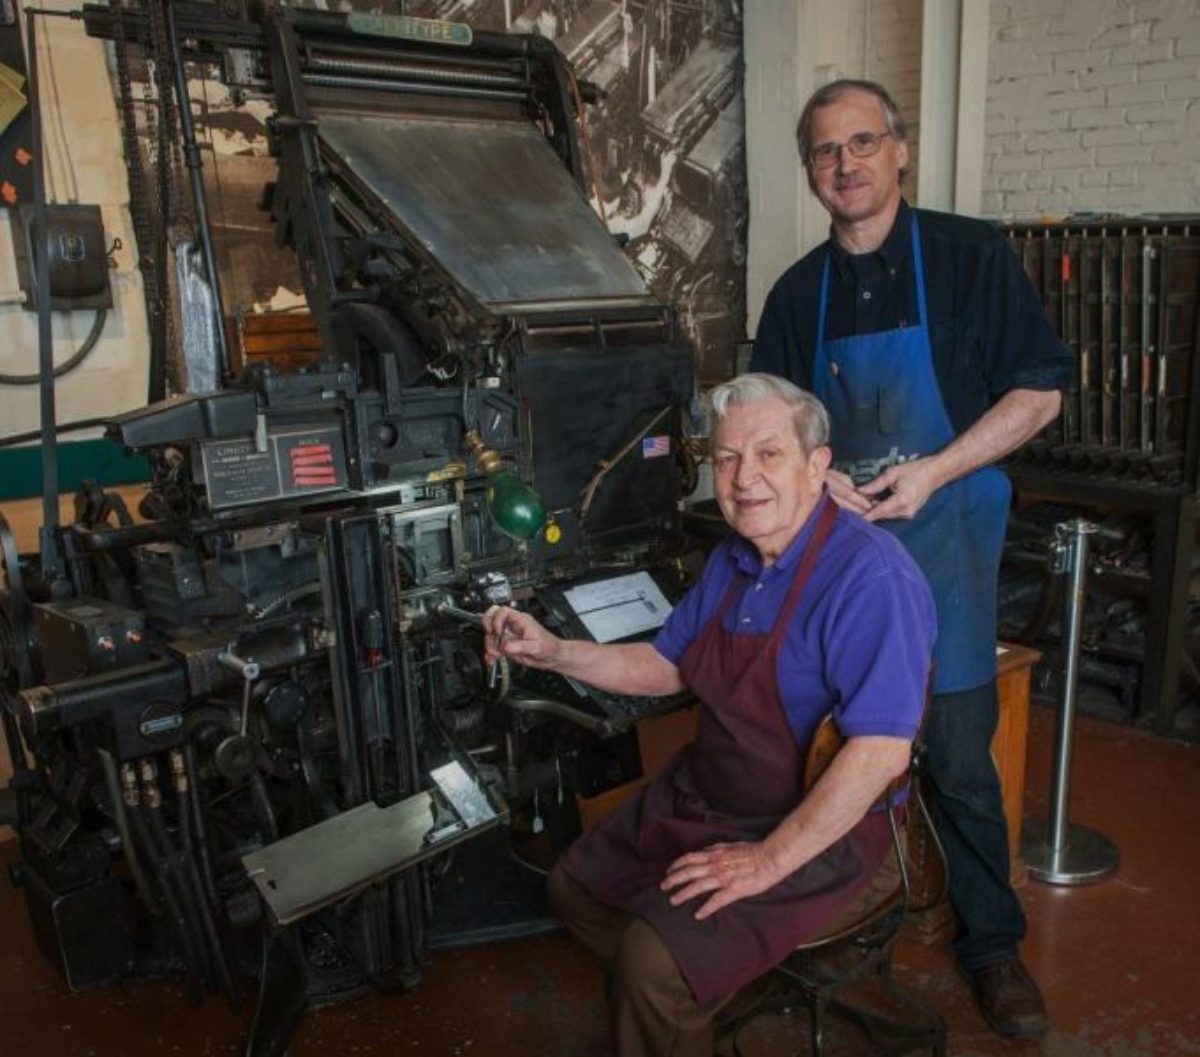 Two men in aprons posing by linotype press.